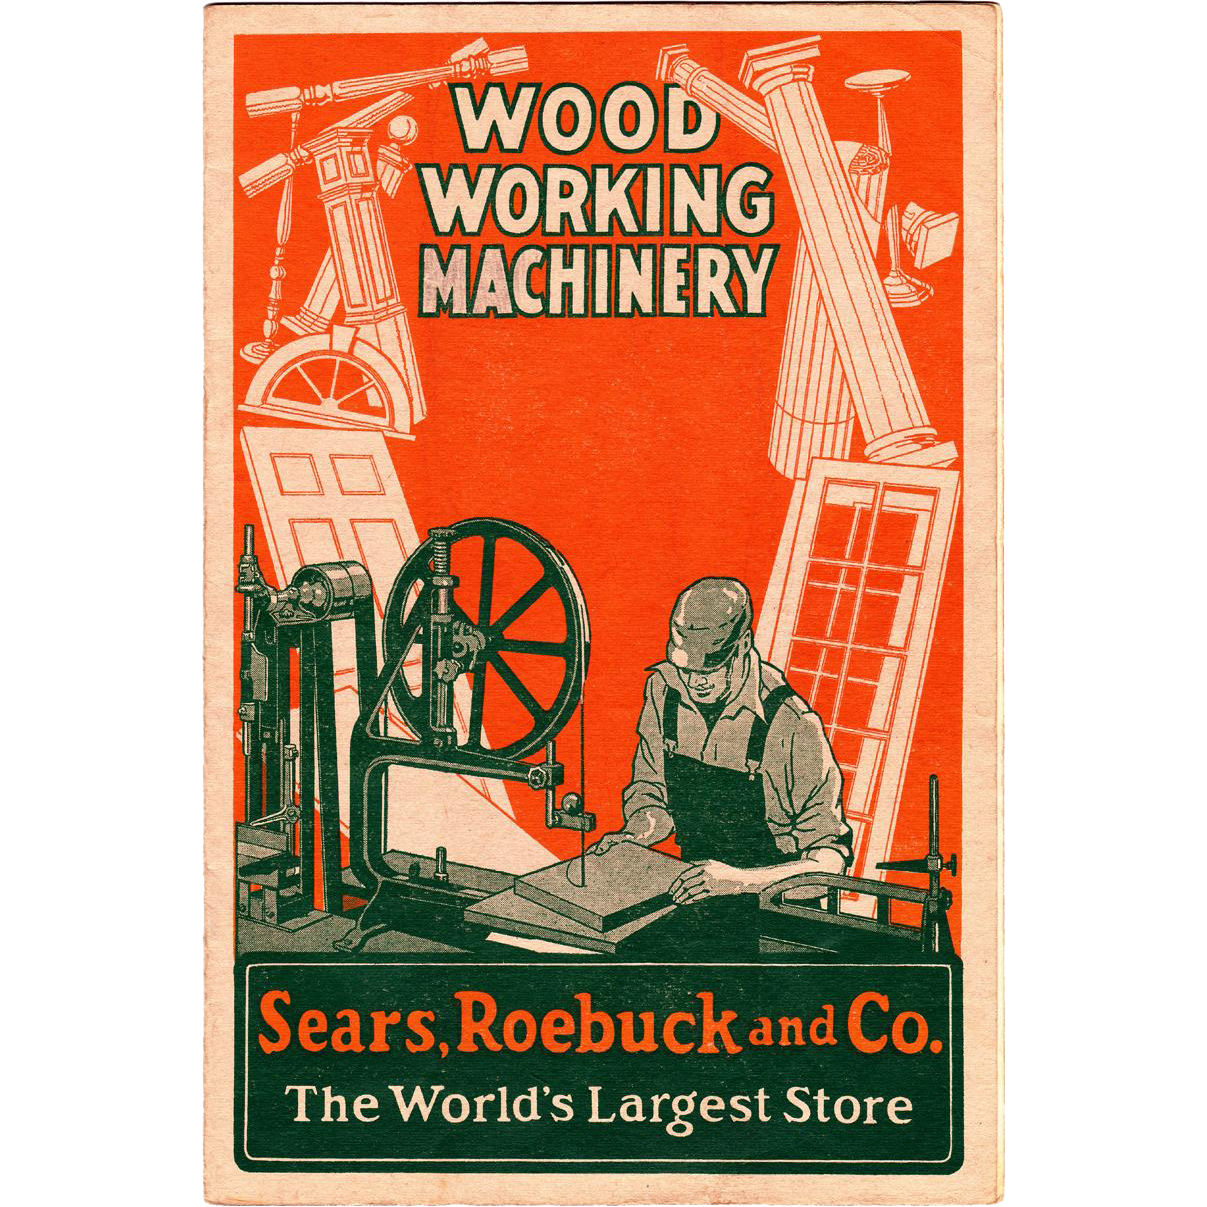 Sears Roebuck Wood Working Machinery Catalog 1928 From Sweetpeacottage On Ruby Lane